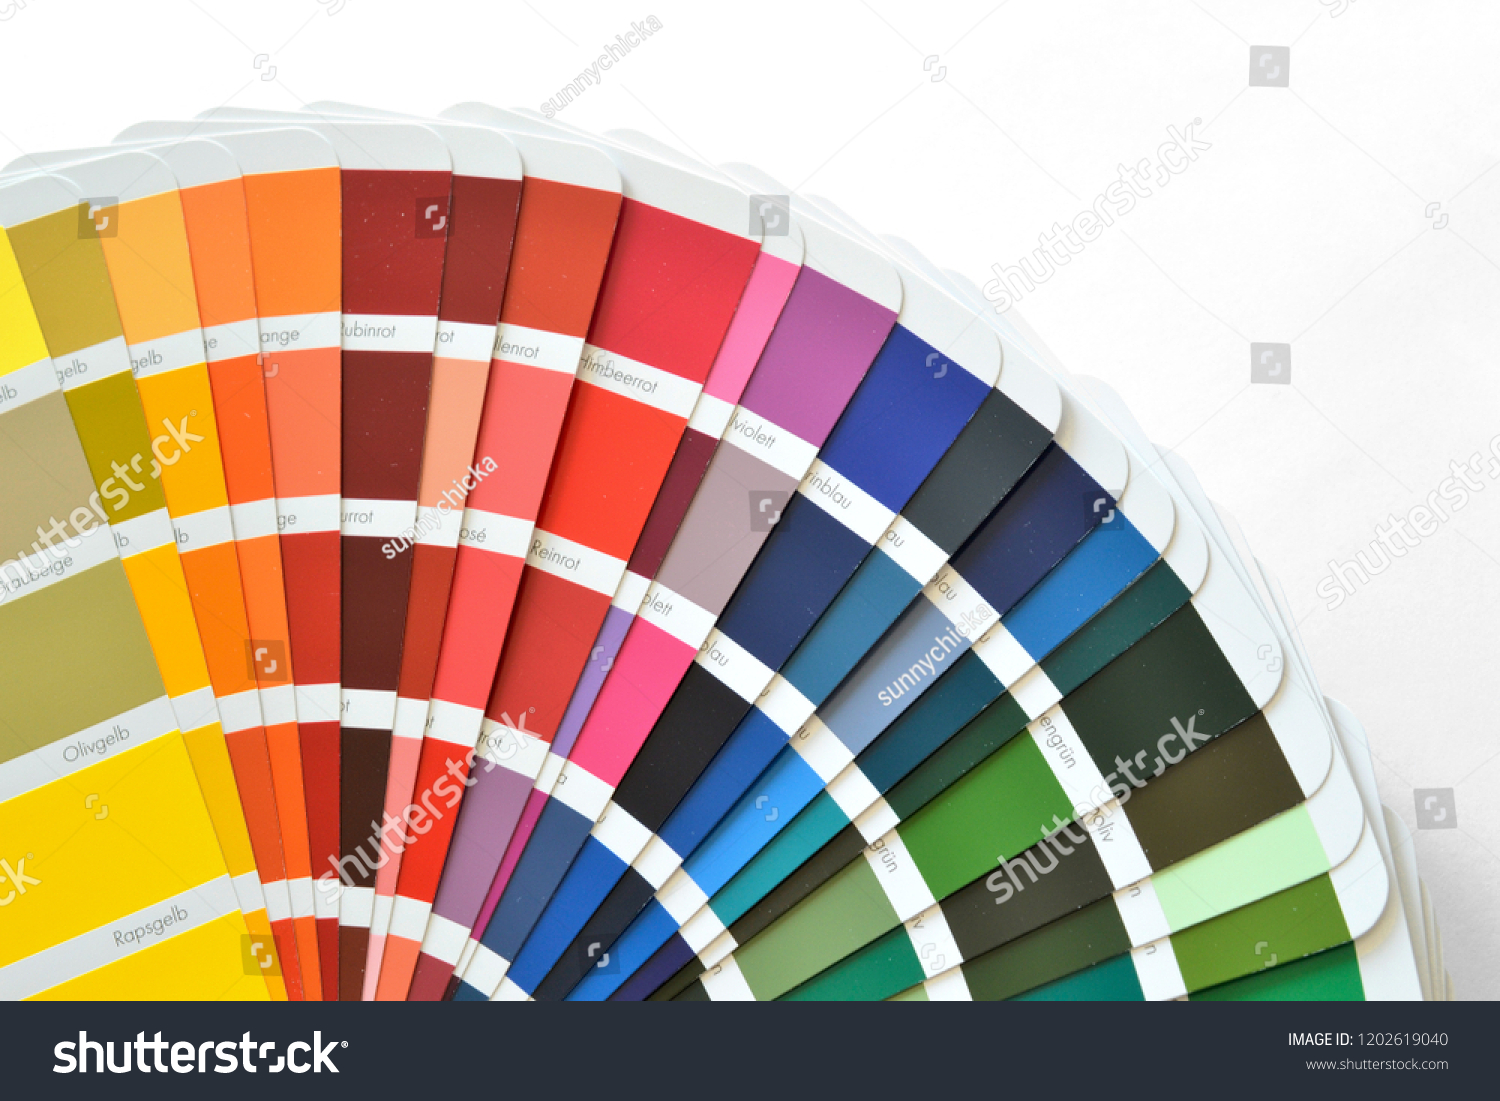 Ral Cmyk Ral Color Fan Cmyk Color Book Stock Photo Edit Now 1202619040